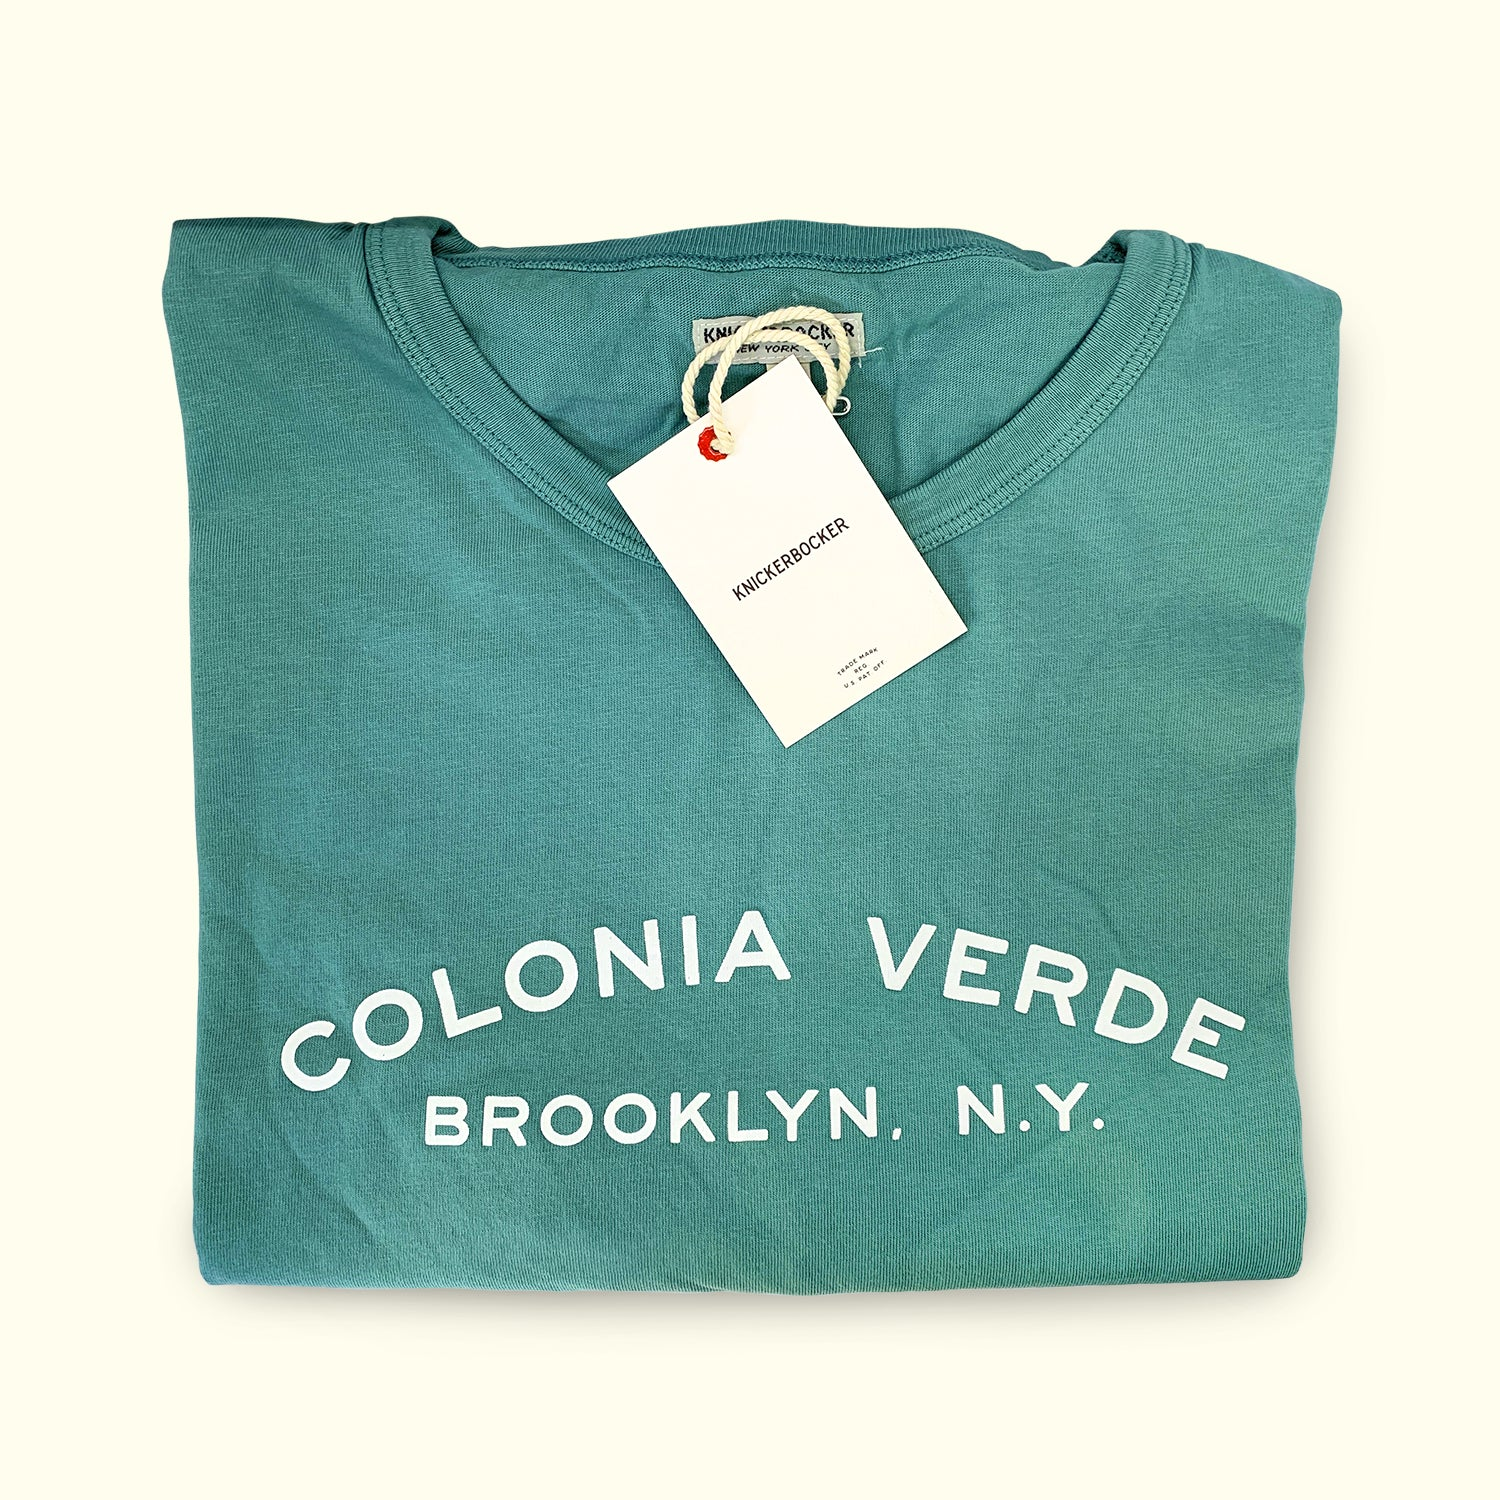 Colonia Verde T-Shirt by Knickerbocker